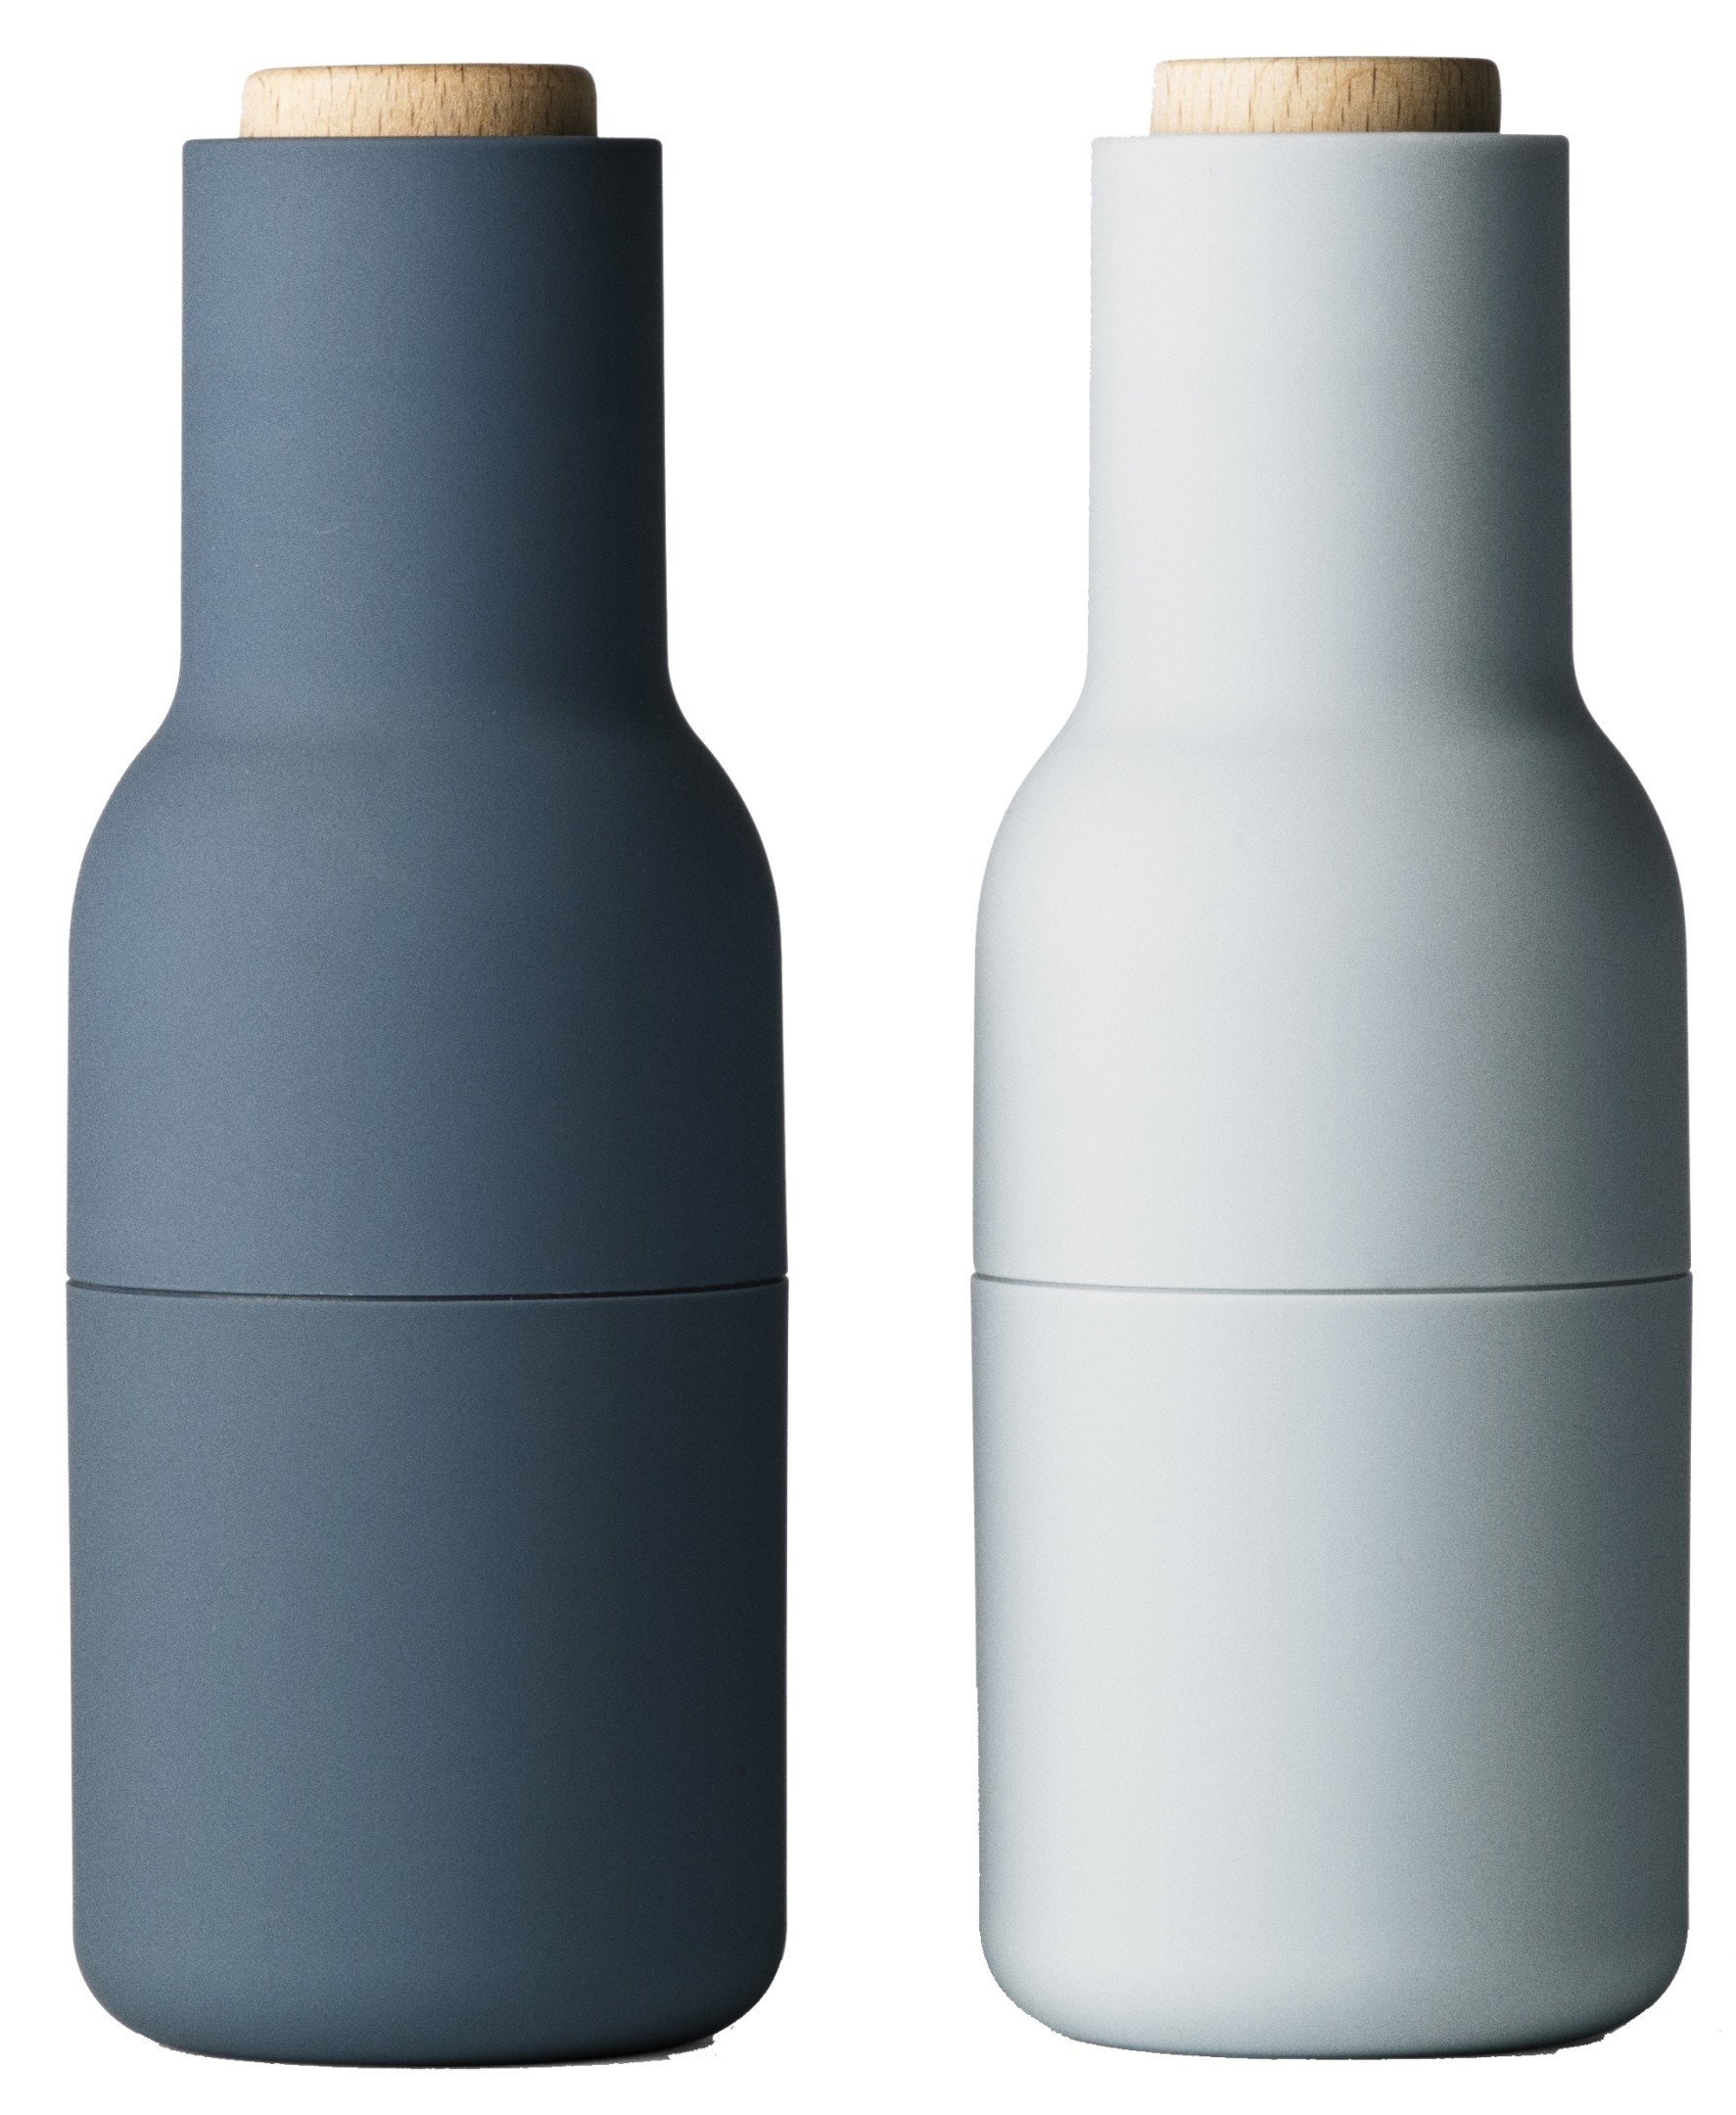 Set of Two Bottle Grinders Small Blues Beech, by Norm Architects for Menu